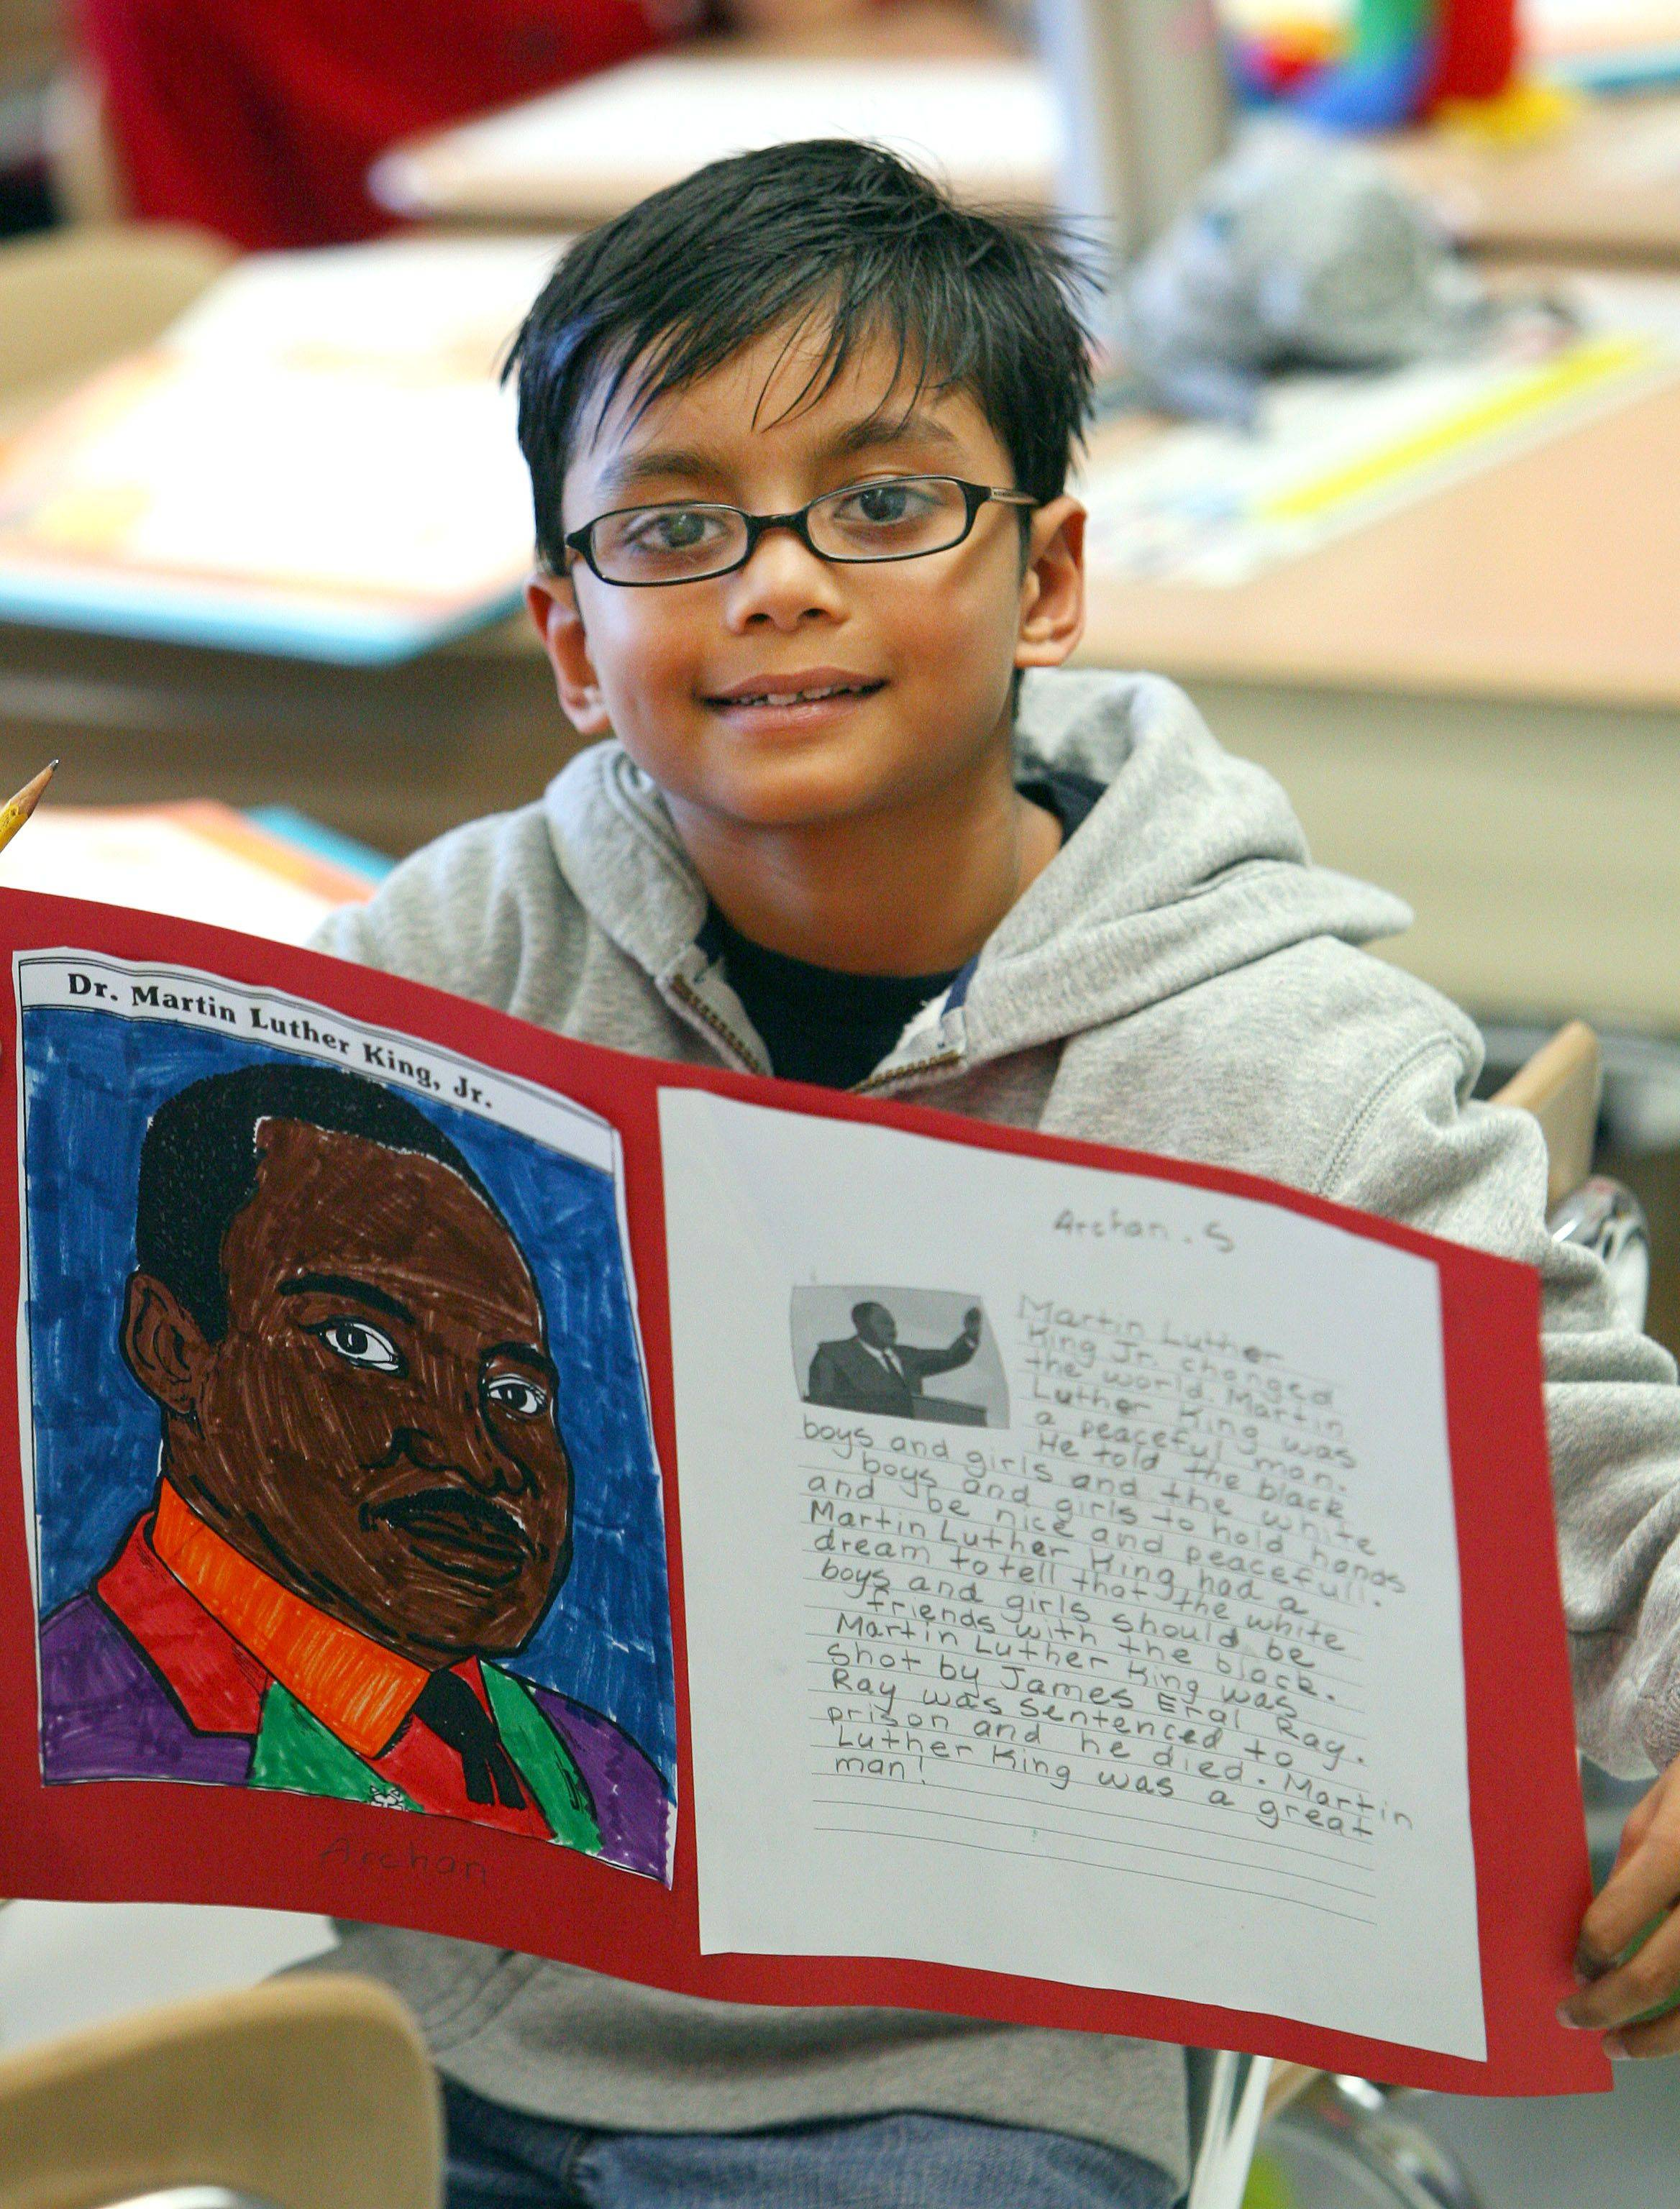 Archan Sriselvakumar, 7, of Grayslake holds up his project on Martin Luther King Jr. at Woodland Elementary West in Gages Lake. Second-grade students in Nancy Constant's class read books and wrote essays about how Martin Luther King changed the world.